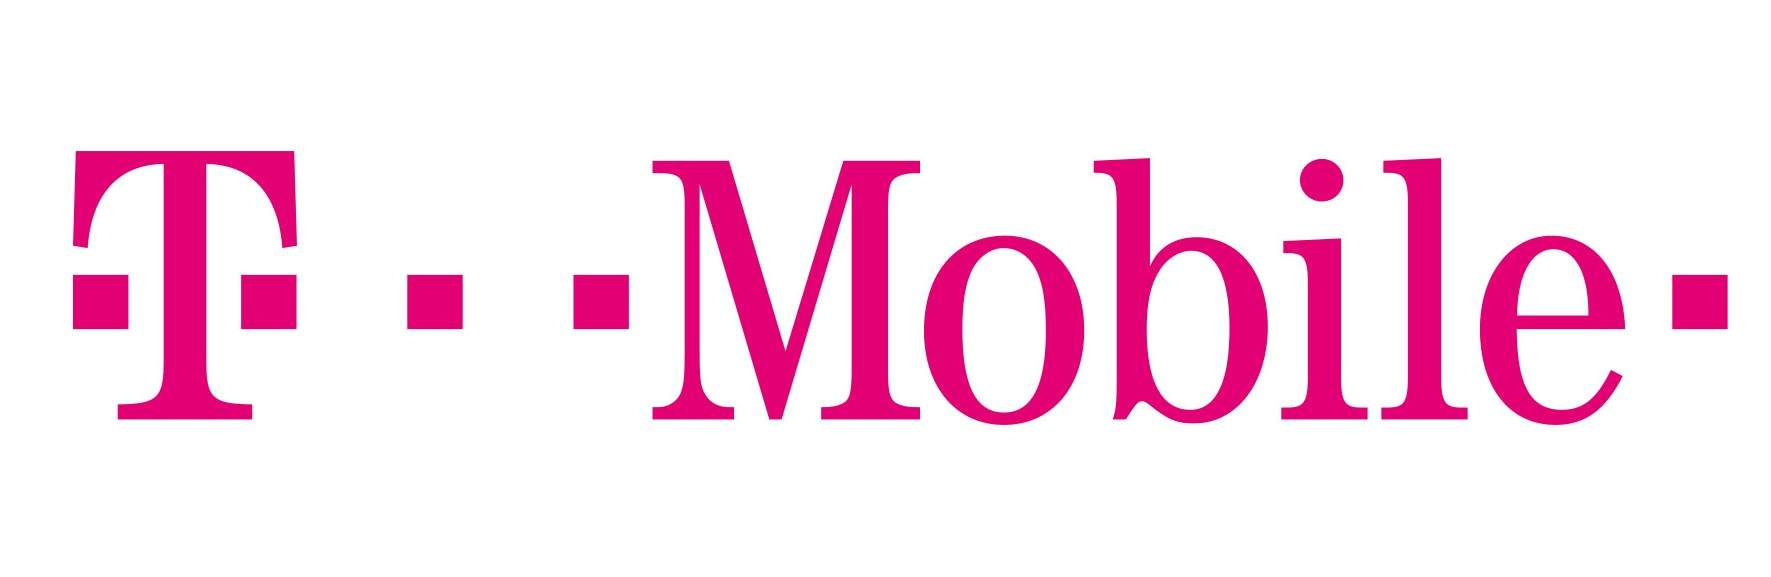 T-Mobile alles in 1